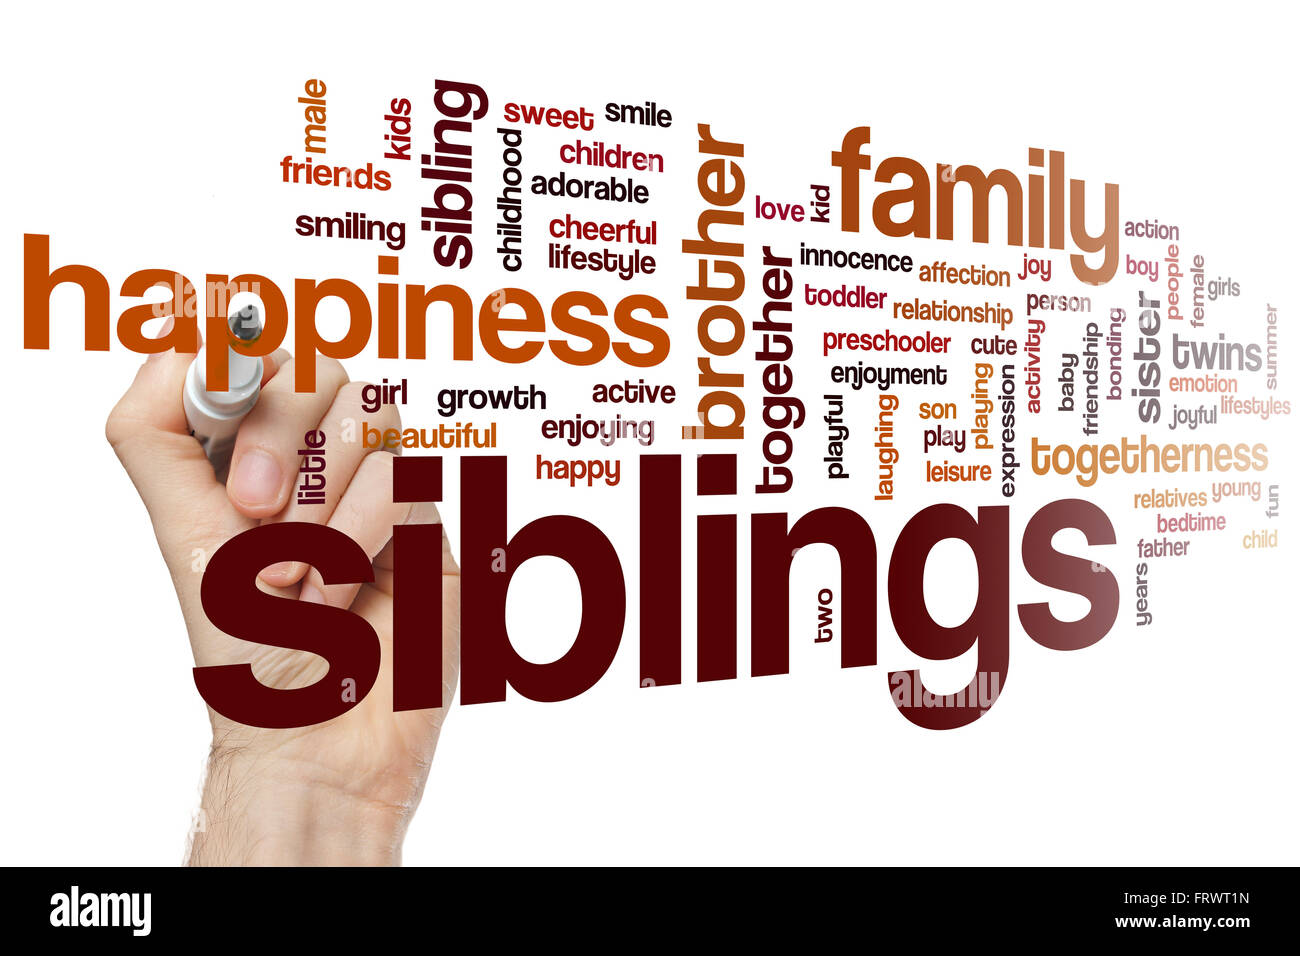 Image result for siblings word